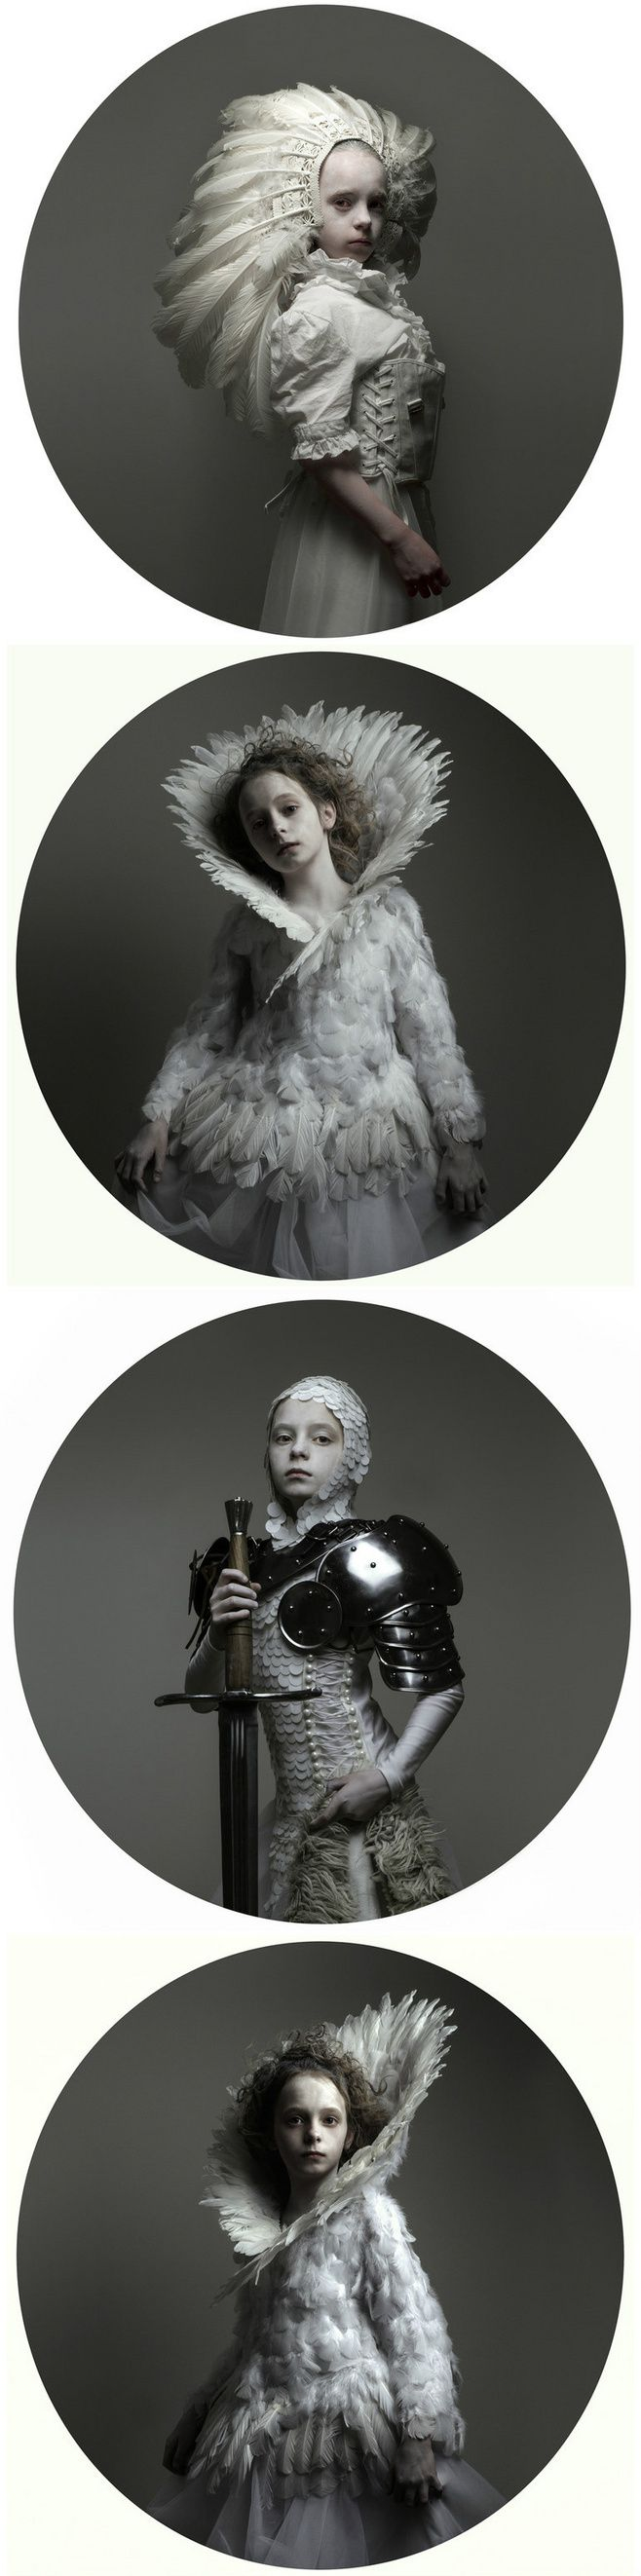 Amazing #fantasy and #feather costumes. Love the lighting and the child model.